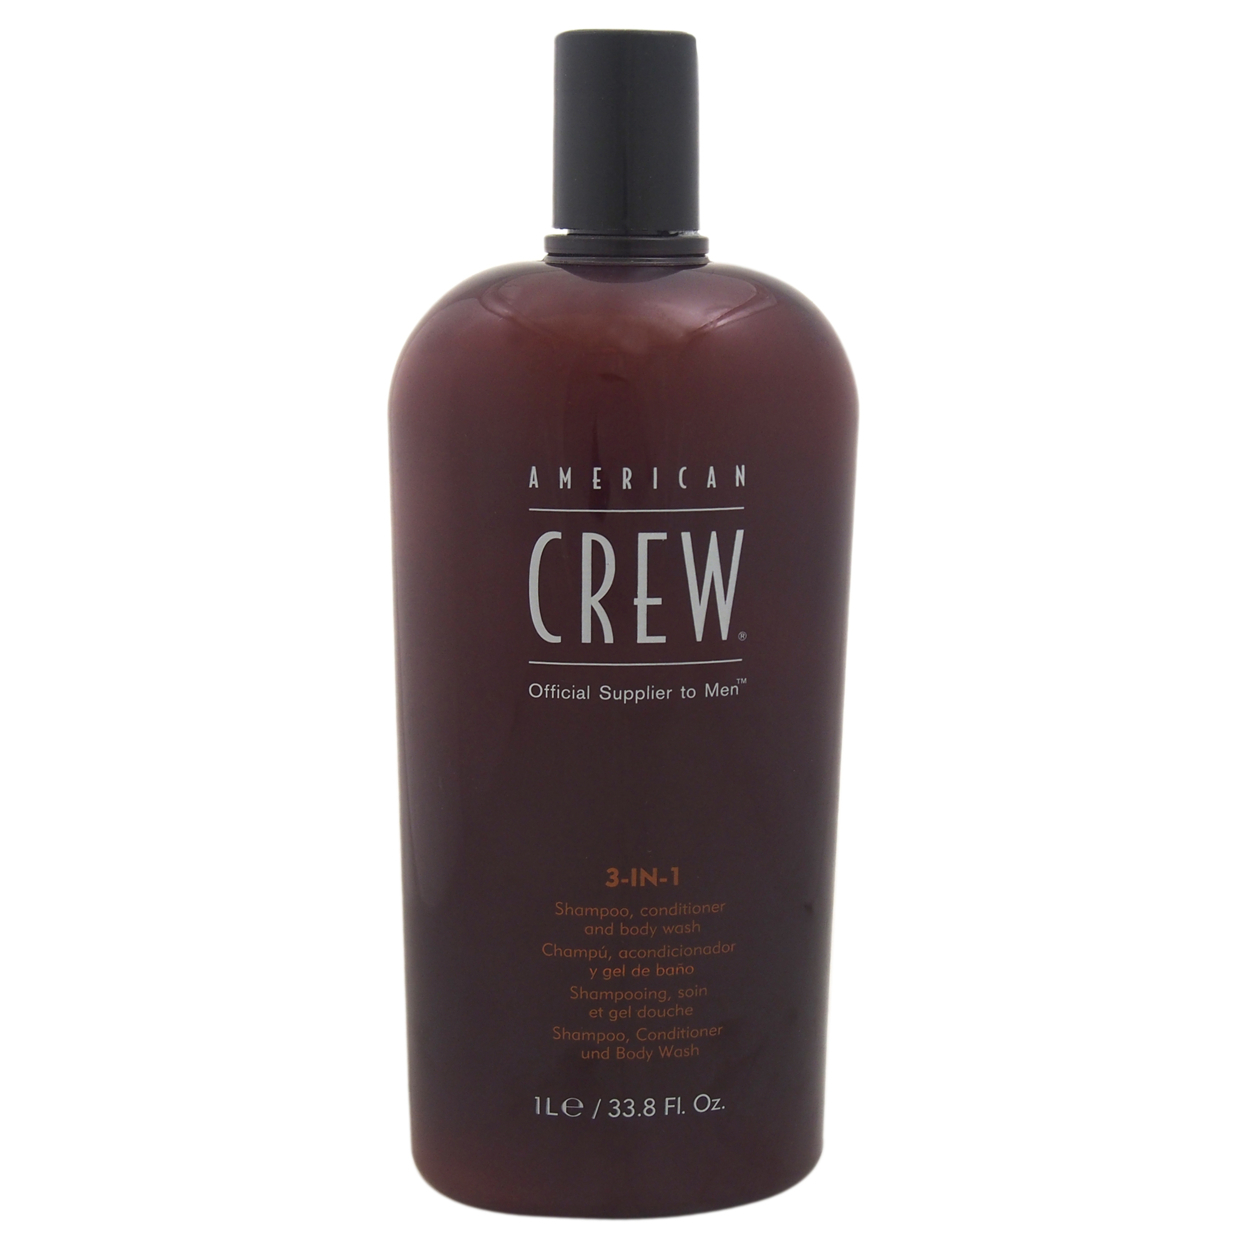 3 In 1 Shampoo & Conditioner & Body Wash by American Crew for Men - 33.8 oz Shampoo & Conditioner & Body Wash 55bf9d99a2771cac518b4aa9